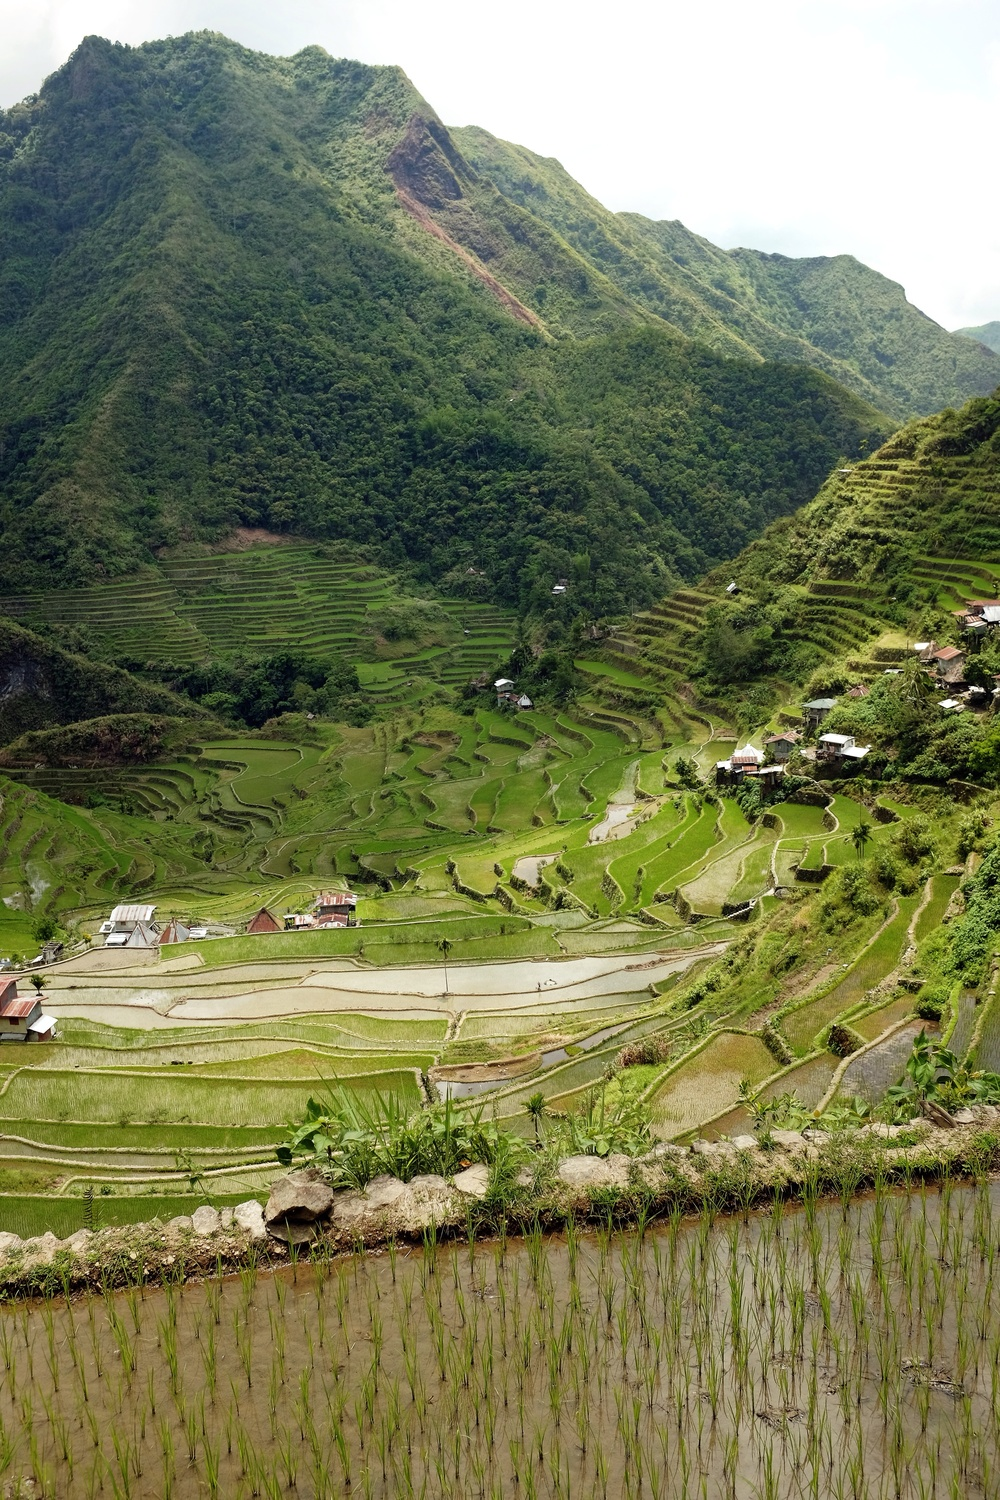 The view as we descended into the Batad rice terraces on our way to Tappia Falls.